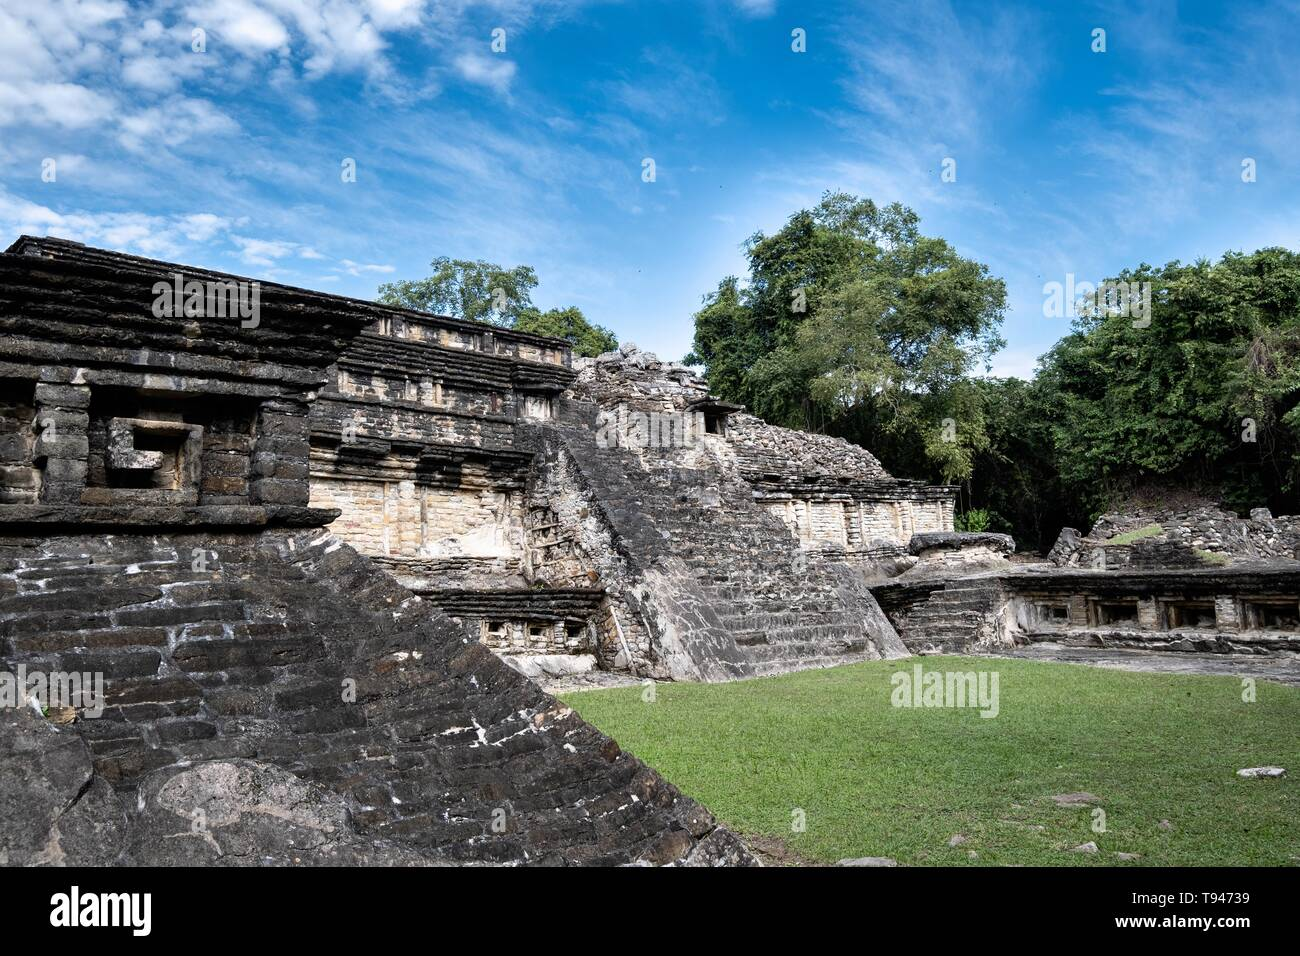 Mesoamerica residents called the Tajin Chico at the pre-Columbian archeological complex of El Tajin in Tajin, Veracruz, Mexico. El Tajín flourished from 600 to 1200 CE and during this time numerous temples, palaces, ballcourts, and pyramids were built by the Totonac people and is one of the largest and most important cities of the Classic era of Mesoamerica. - Stock Image